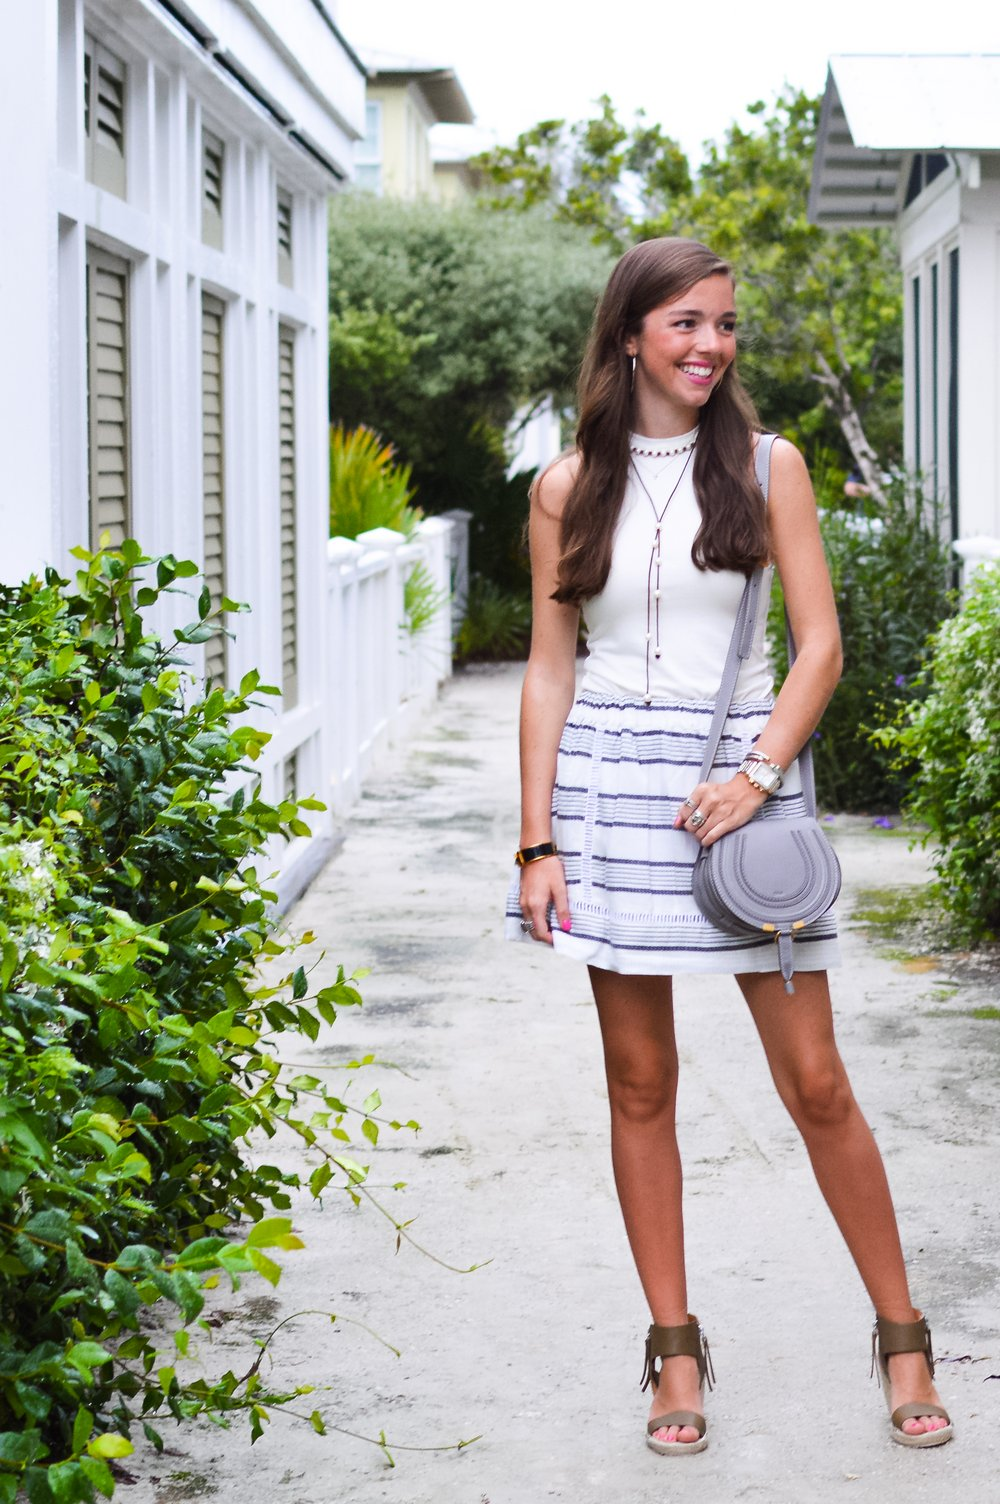 fashion blogger lcb style seaside florida rachel pally  (1 of 11).jpg